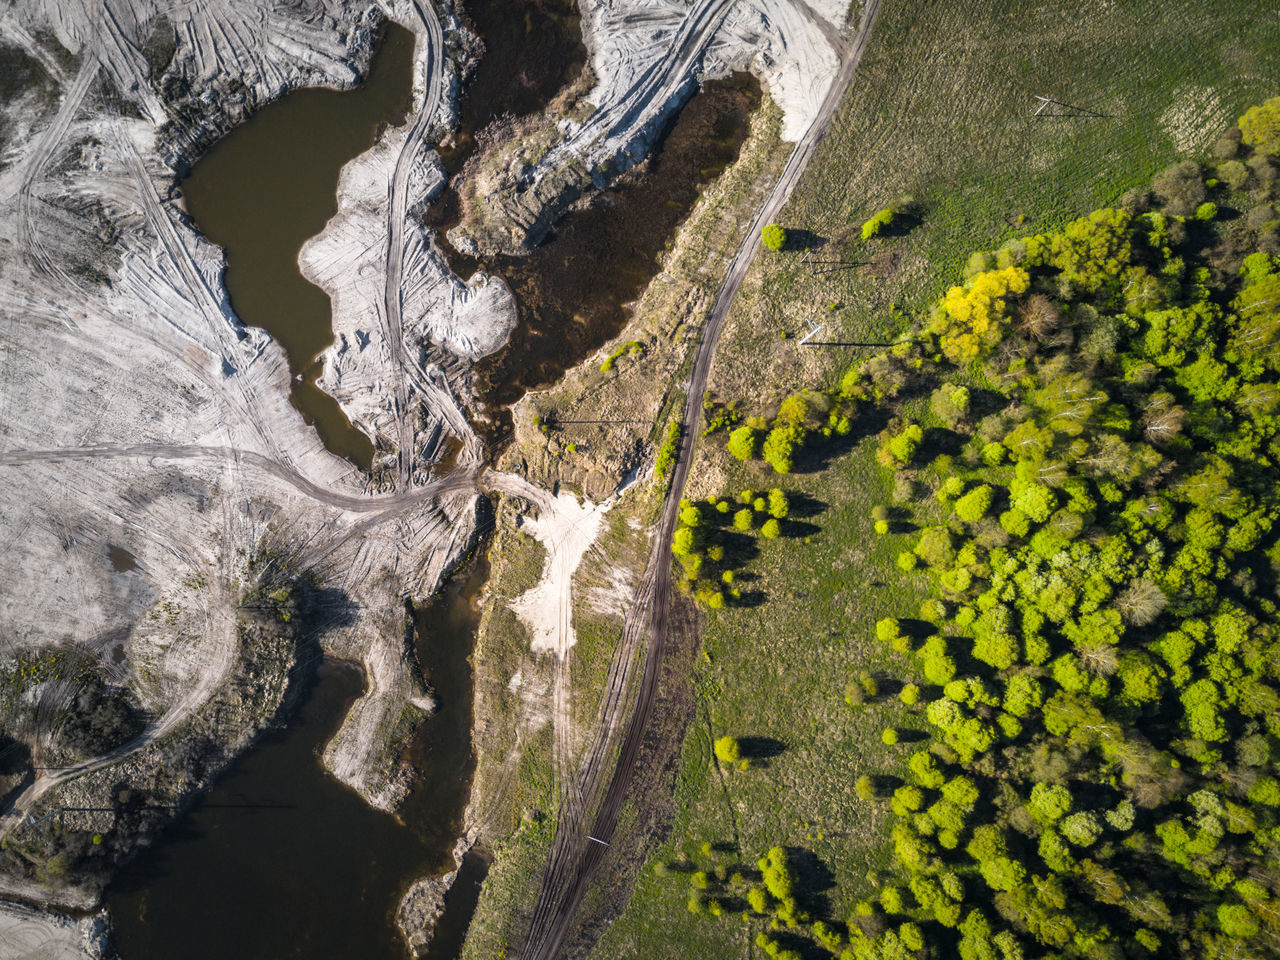 Two Worlds - Big contrast on planet Earth Barrier Beauty In Nature Bird Eyes View Contrast Contrasting Colors Dji Drone  Dronephotography Dunes Earth Forest Forest Photography High Angle View Lake Lakes  Landscape Mavic Mavic Pro Nature Physical Geography Quarry Sand Scenics Tree Twoworlds